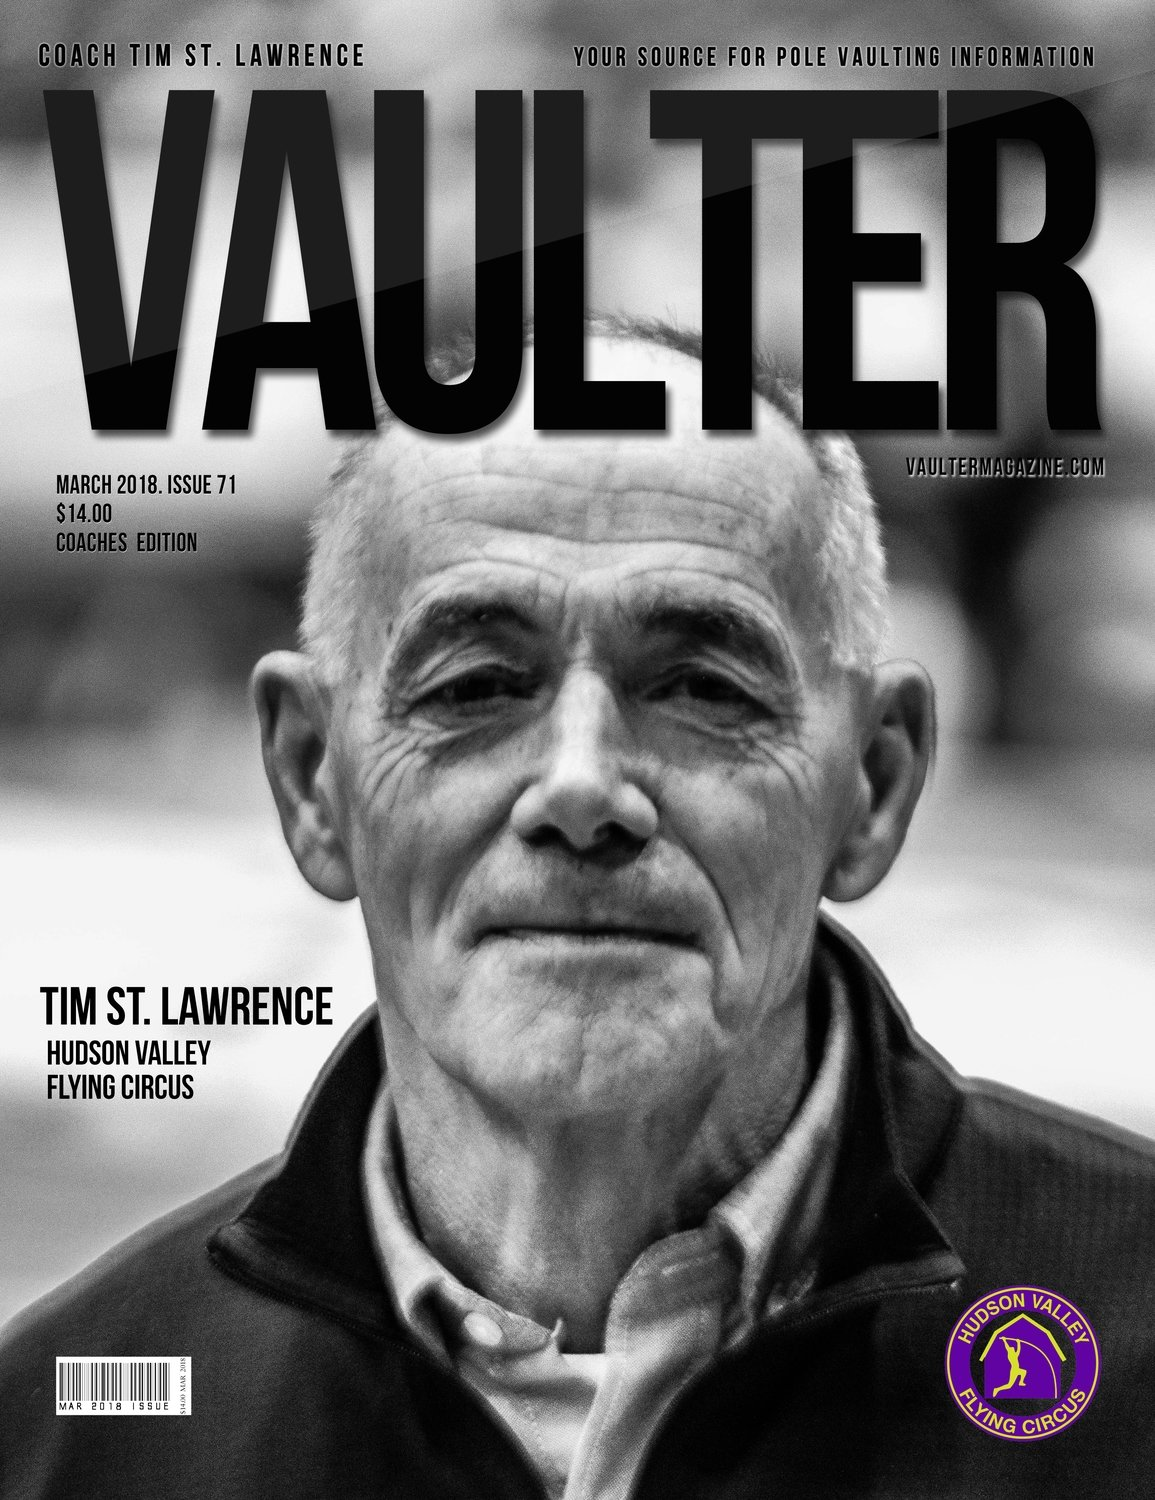 March 2018 Coach Tim St. Lawrence Issue of Vaulter Magazine Cover USPS Mail